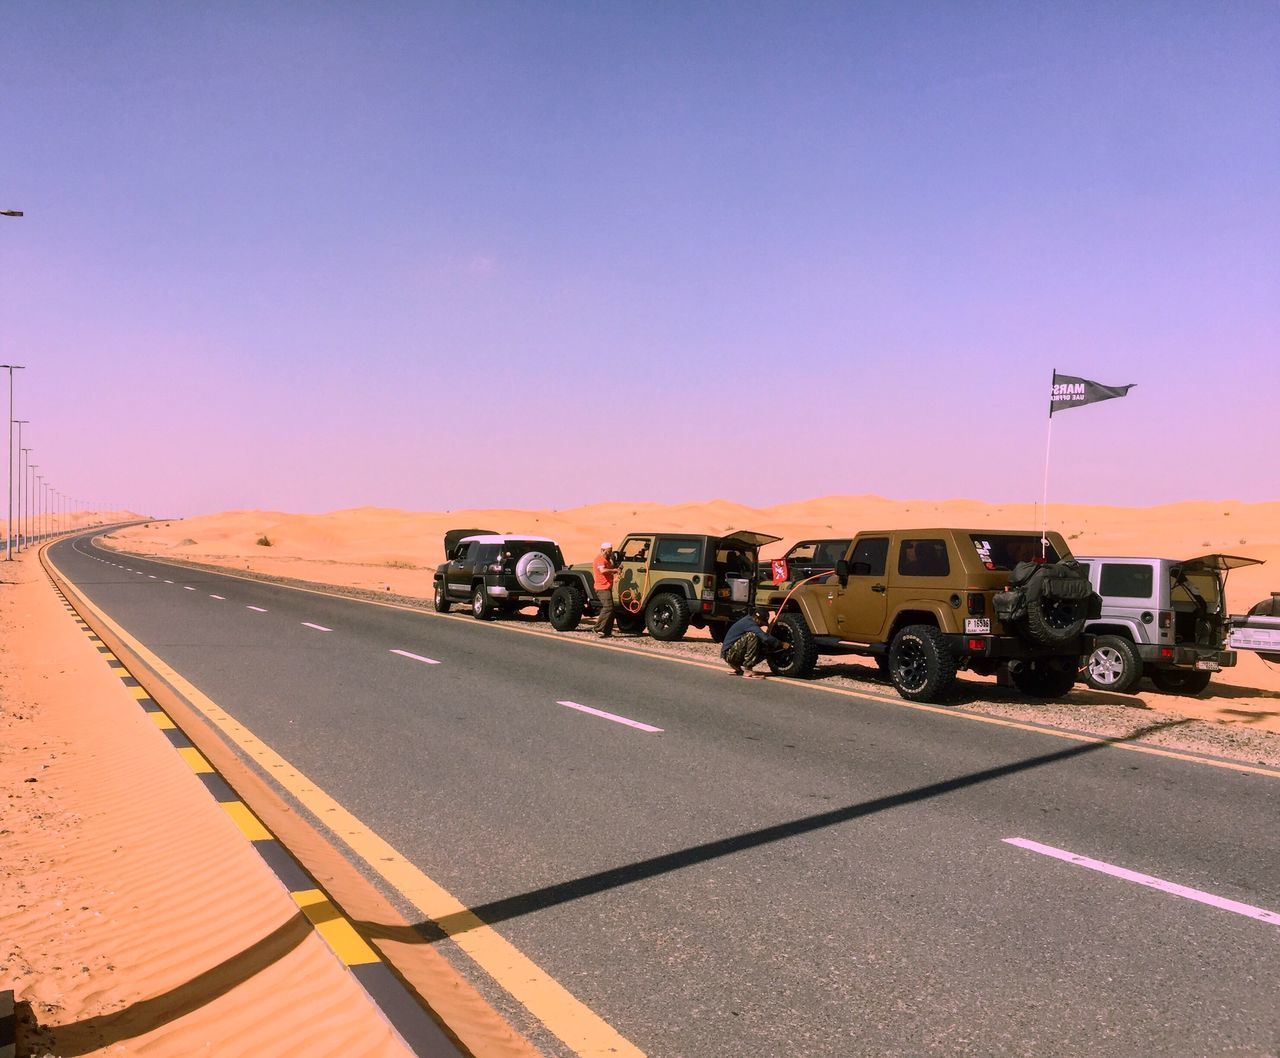 Off roading Transportation Car Land Vehicle Mode Of Transport Outdoors Desert Clear Sky Sky Day Nature Refueling No People